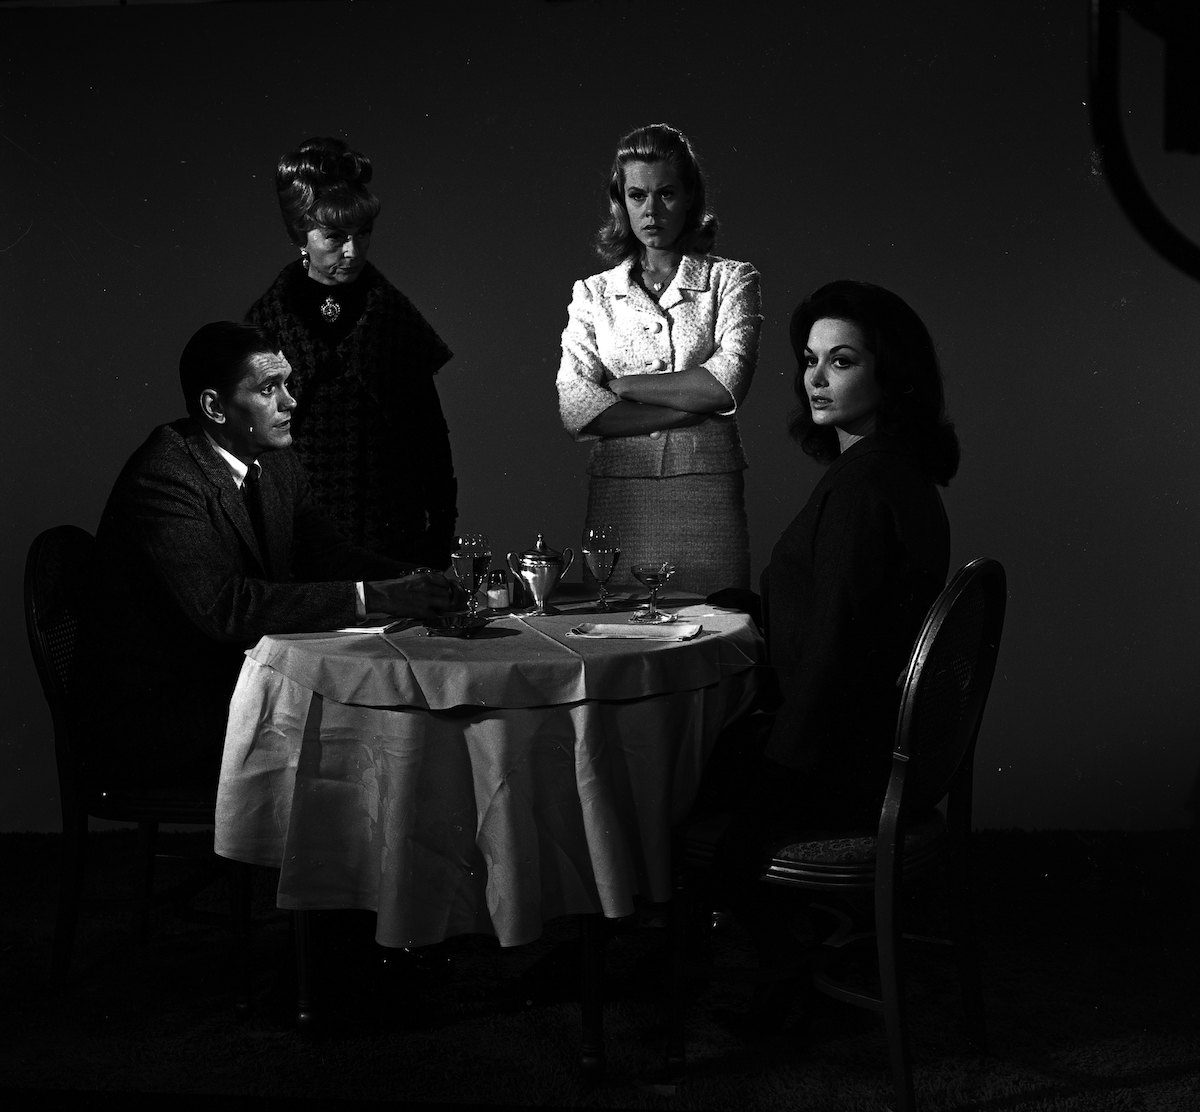 Early Bewitched episode starring Dick York, Agnes Moorehead, and Elizabeth Montgomery as 'Darrin' meet with another woman